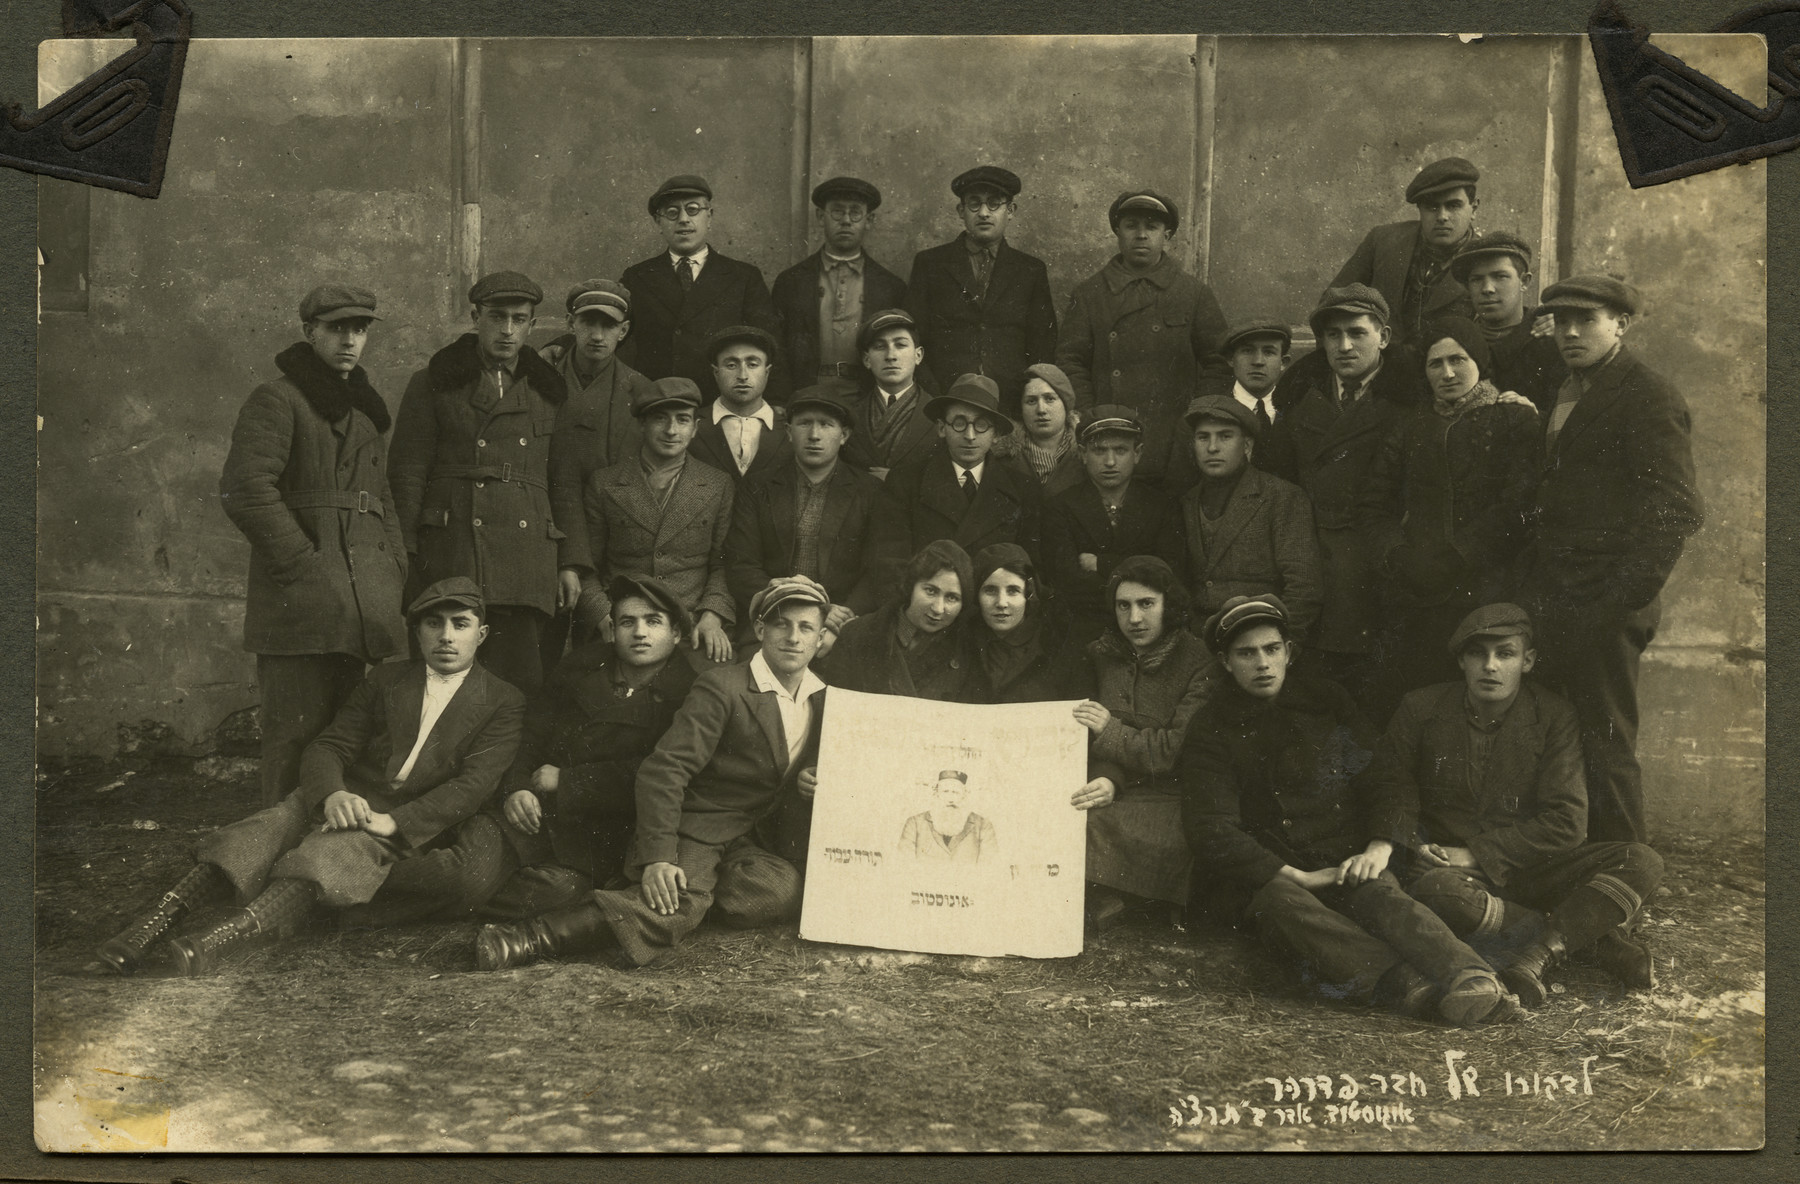 Asher Fetherhar (later Zidon) poses with members of the Hechalutz Mizrachi hachshara in Augustow.